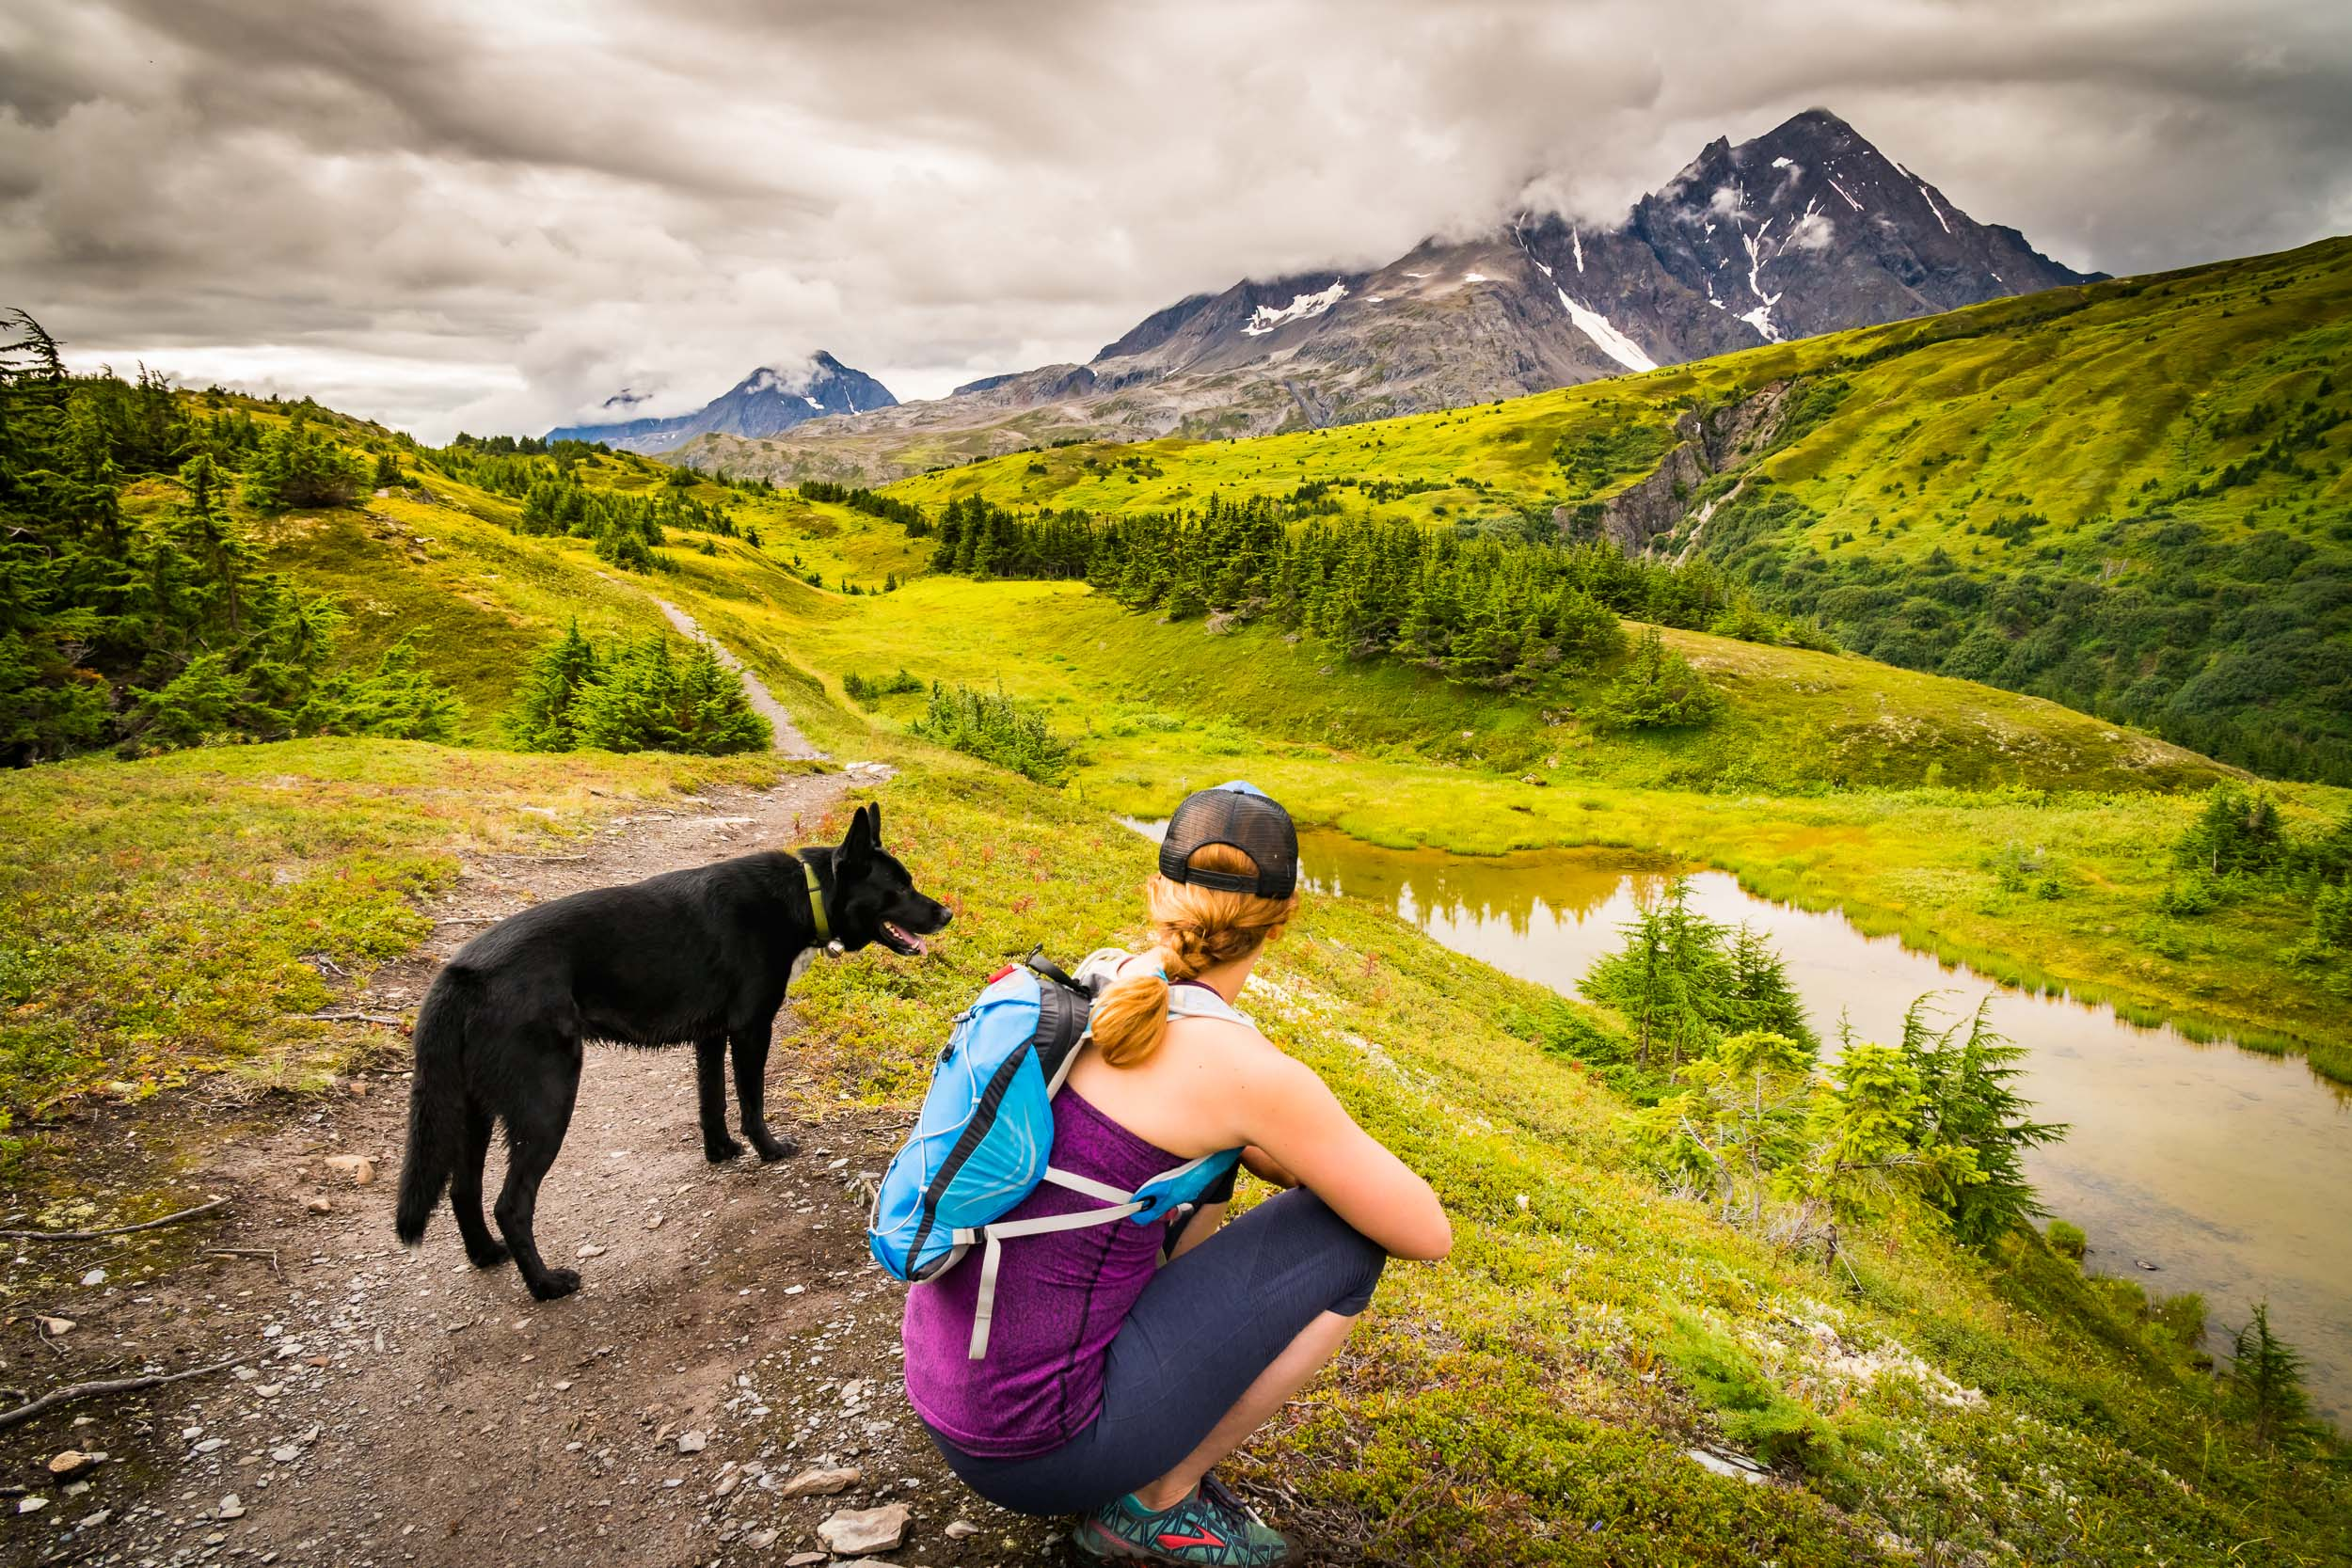 Alaska-Active-Lifestyle-MD170819VAK_HB014